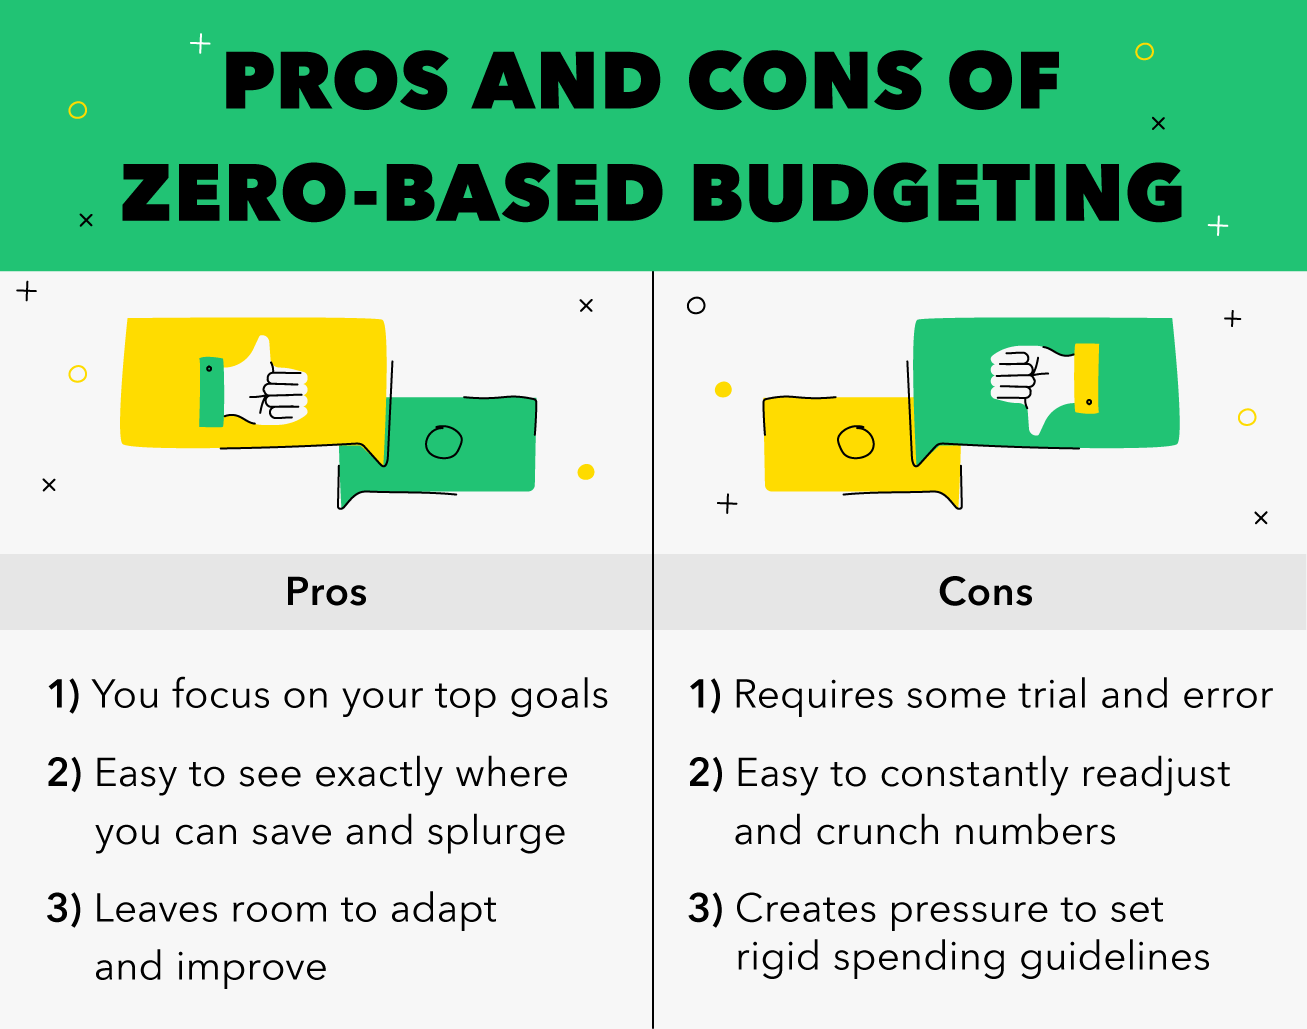 pros and cons of zero based budgeting